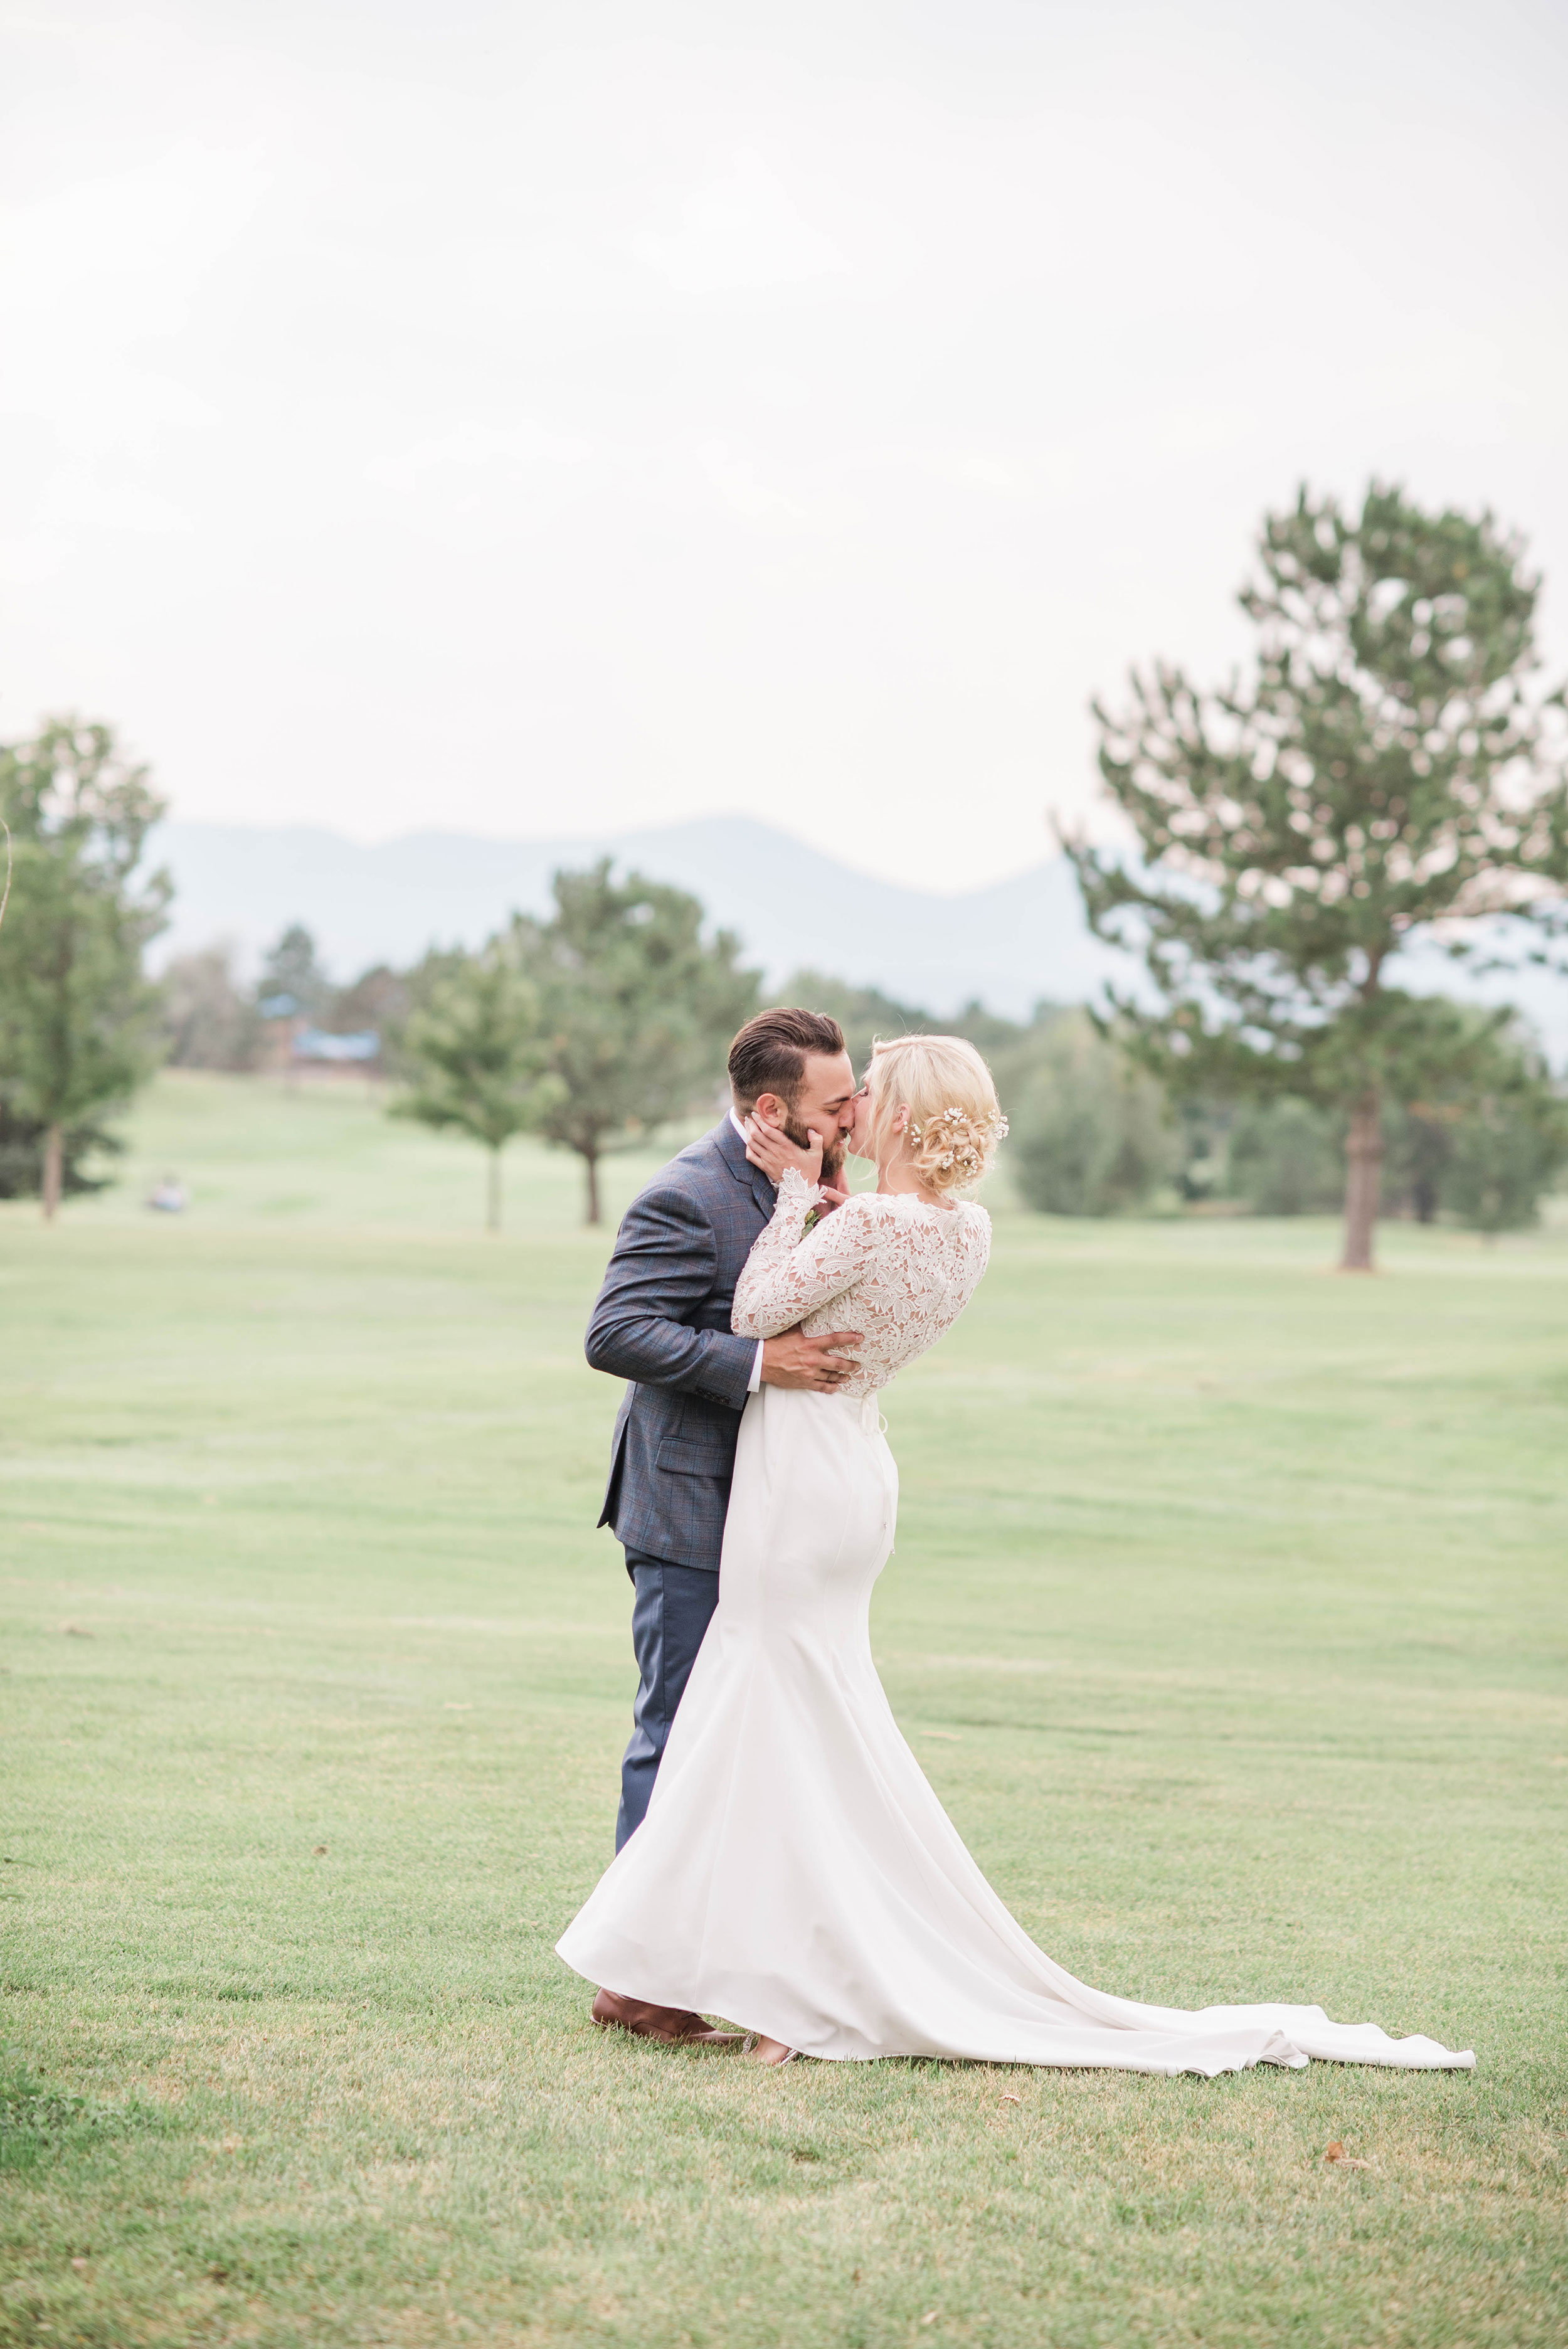 A Colorado wedding filled with romance